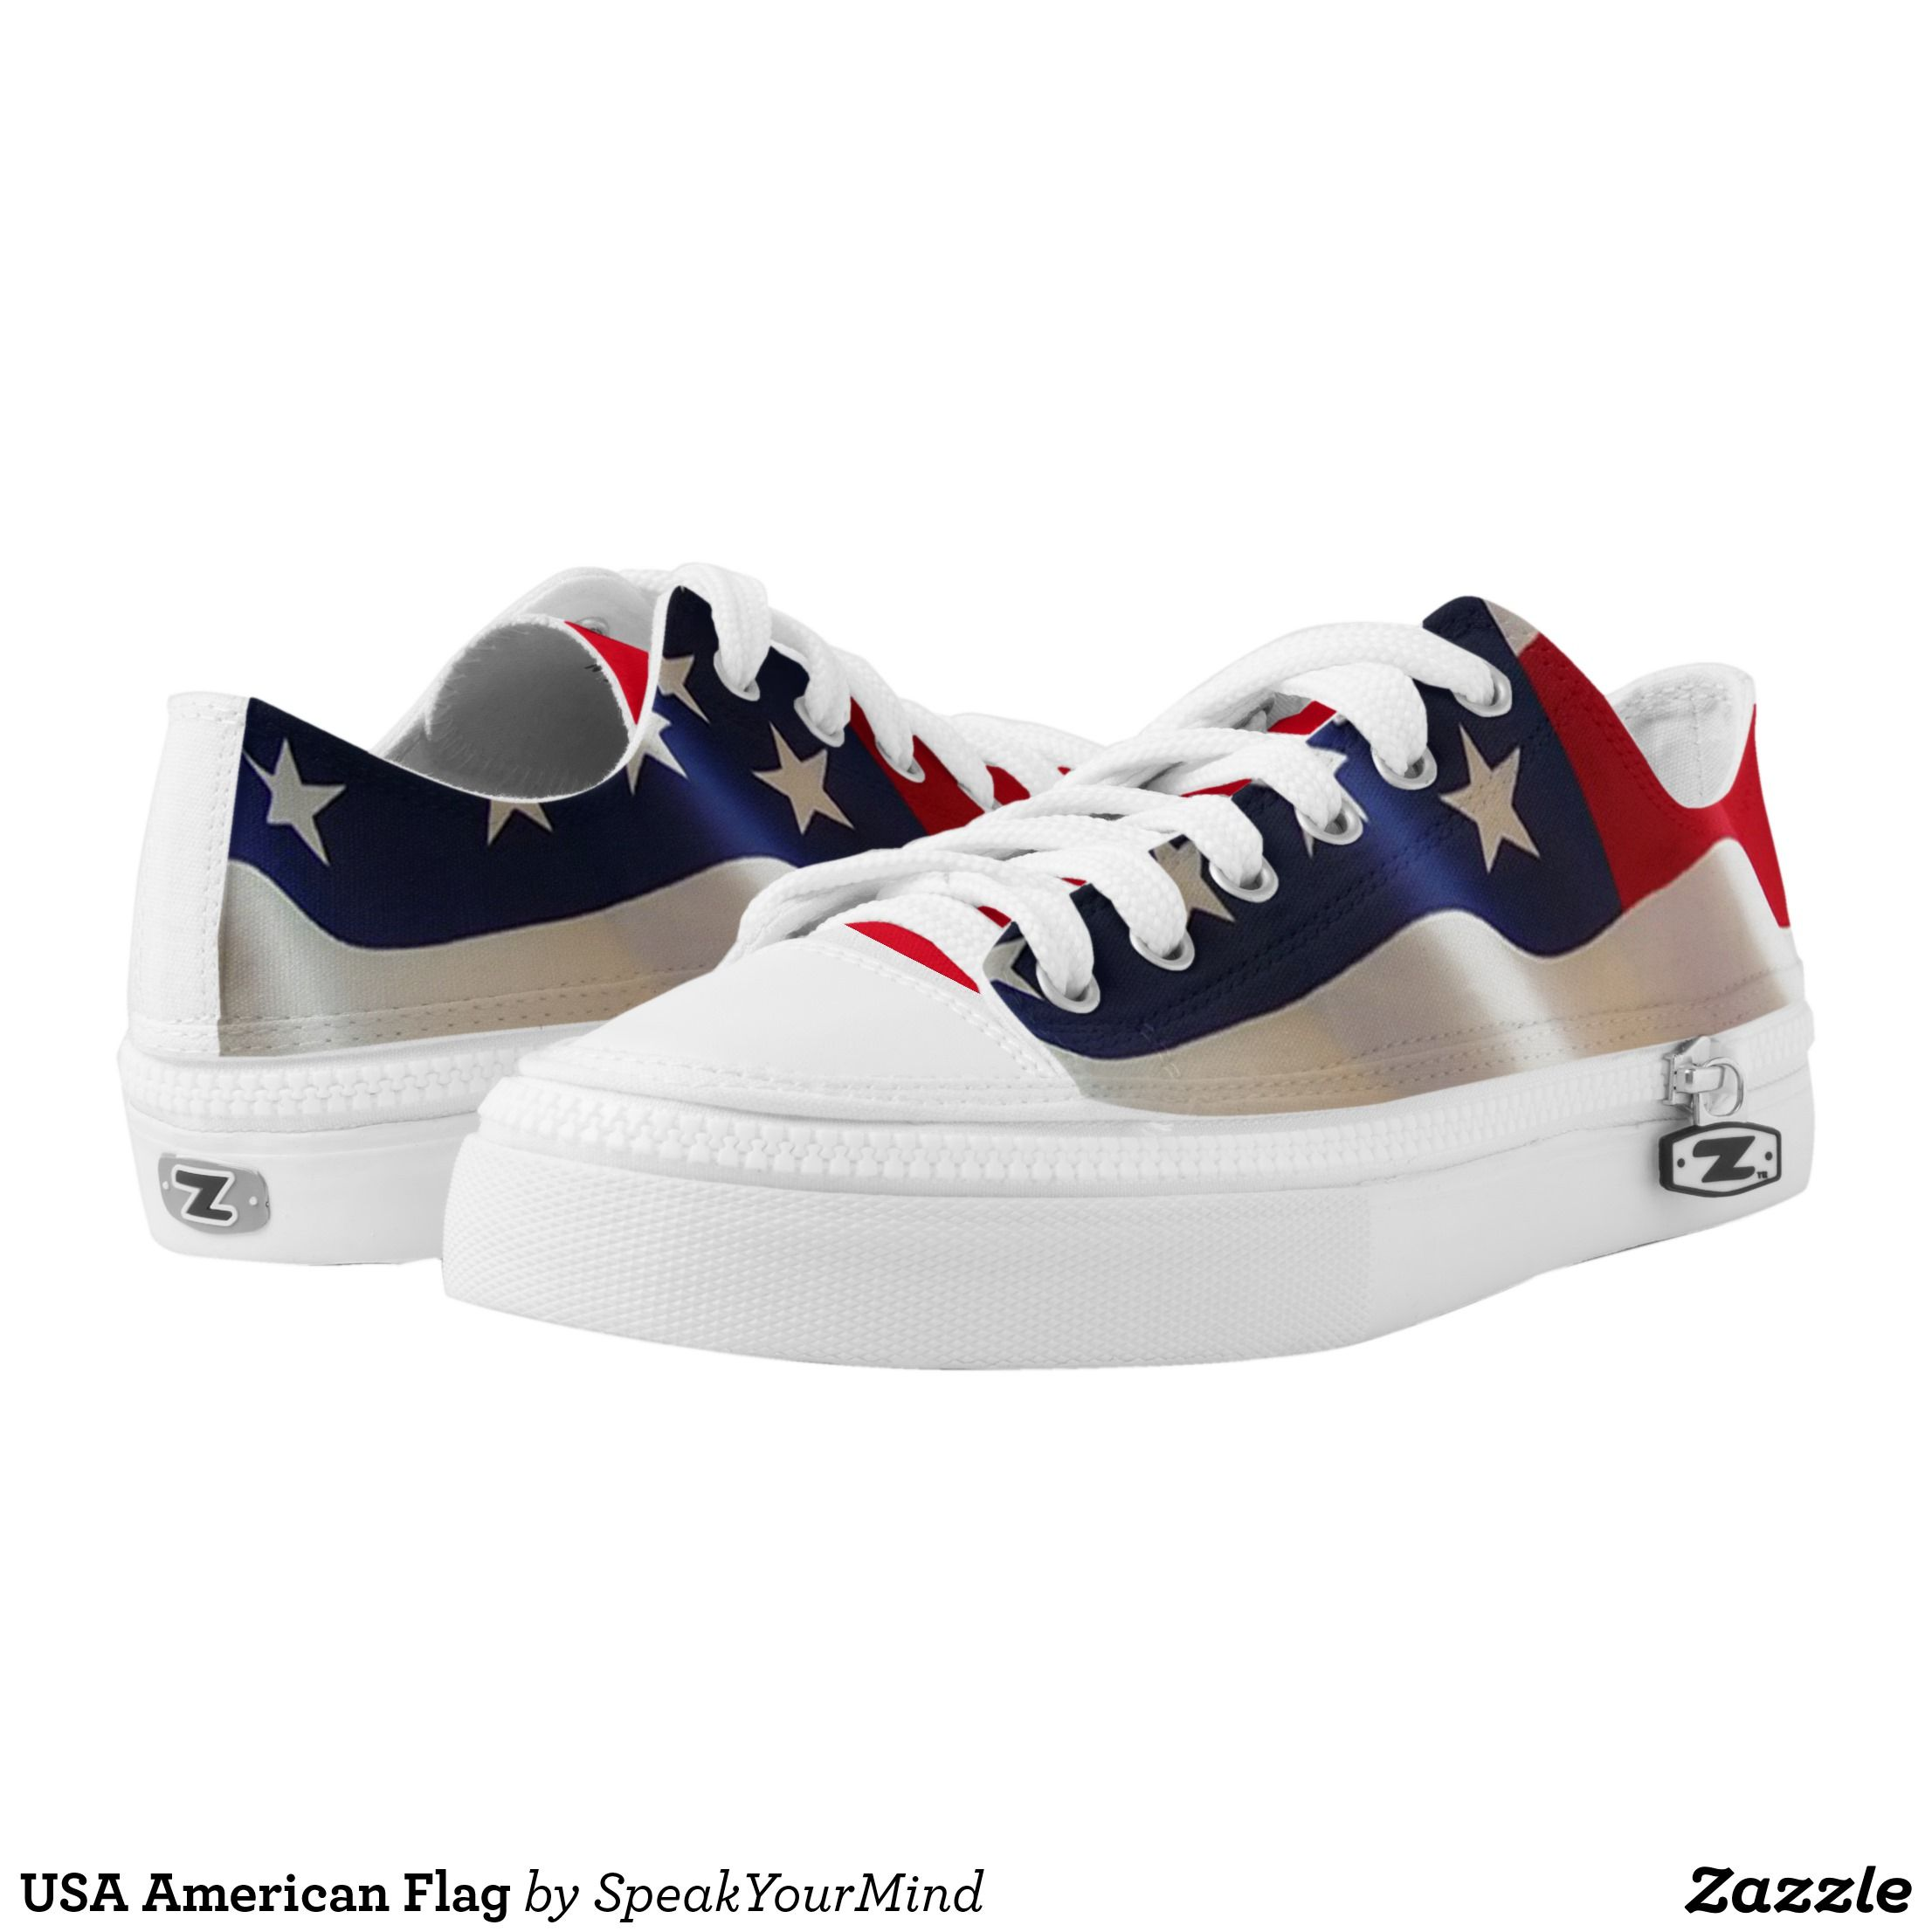 Usa American Flag Low Top Sneakers Zazzle Com Top Sneakers Sneakers Kids Sneakers